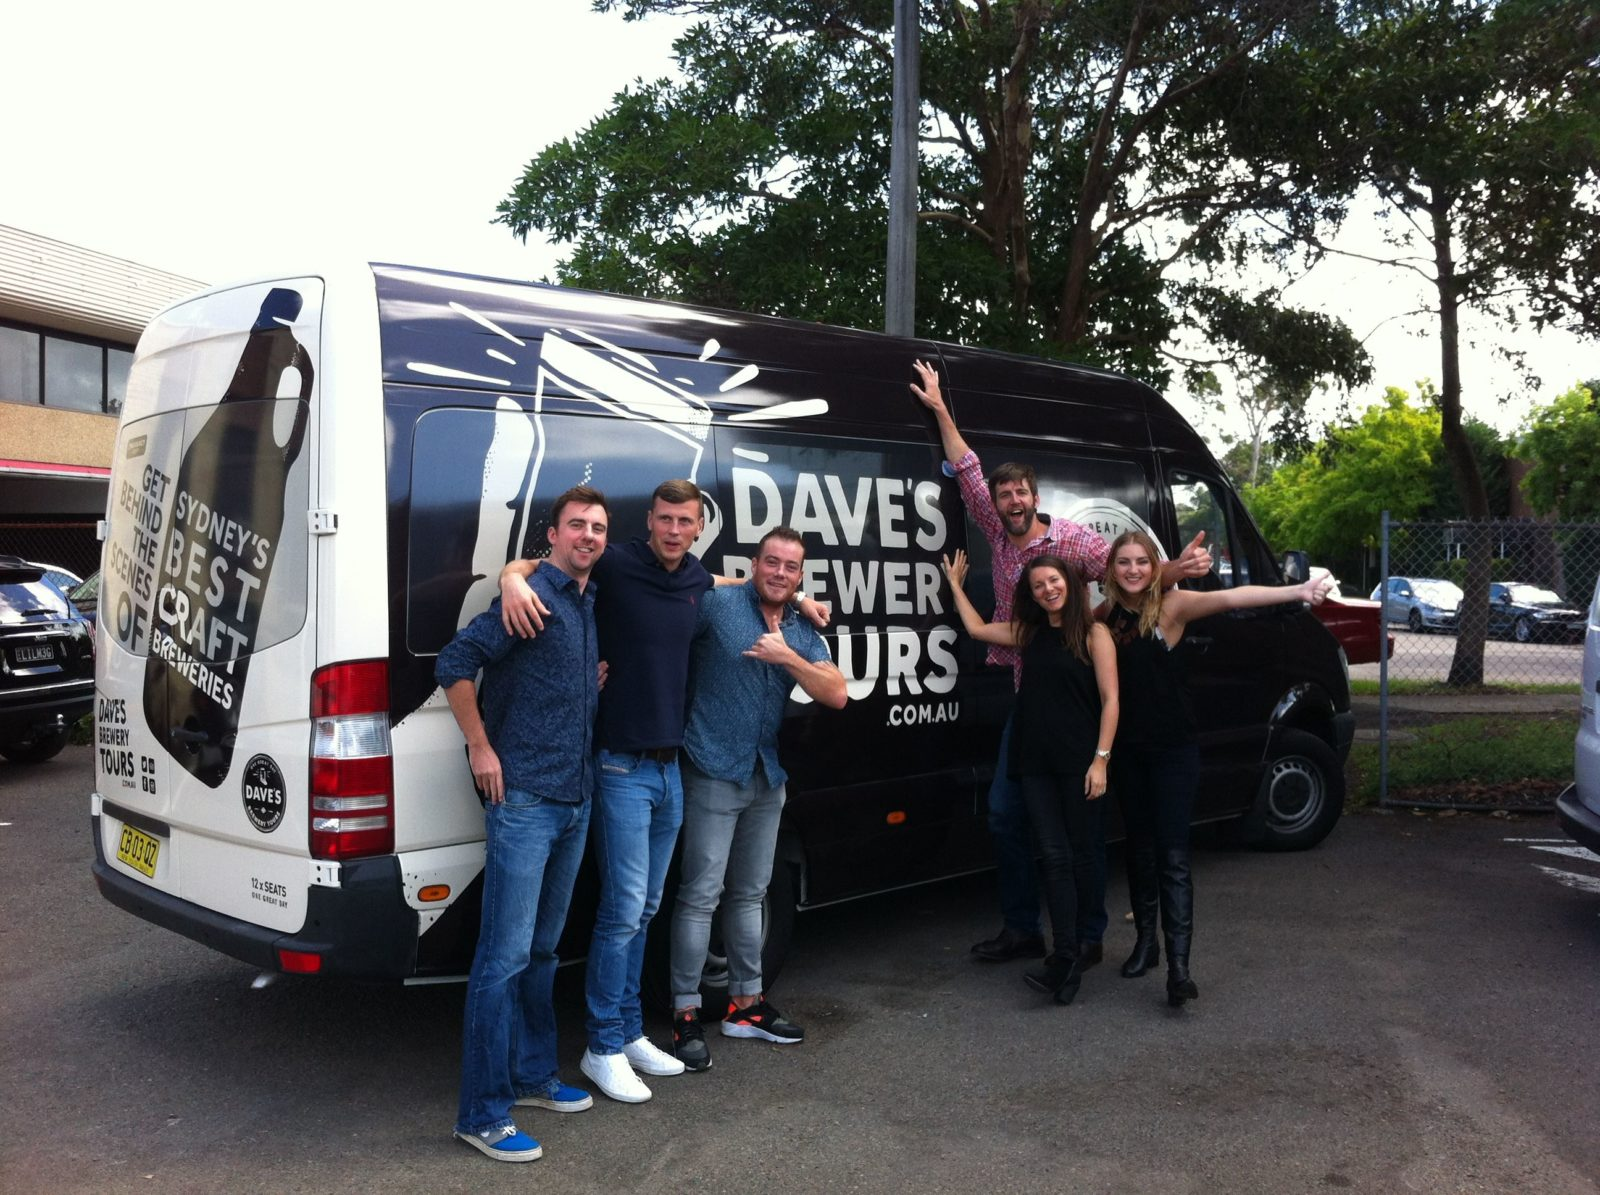 Daves Brewery Tours